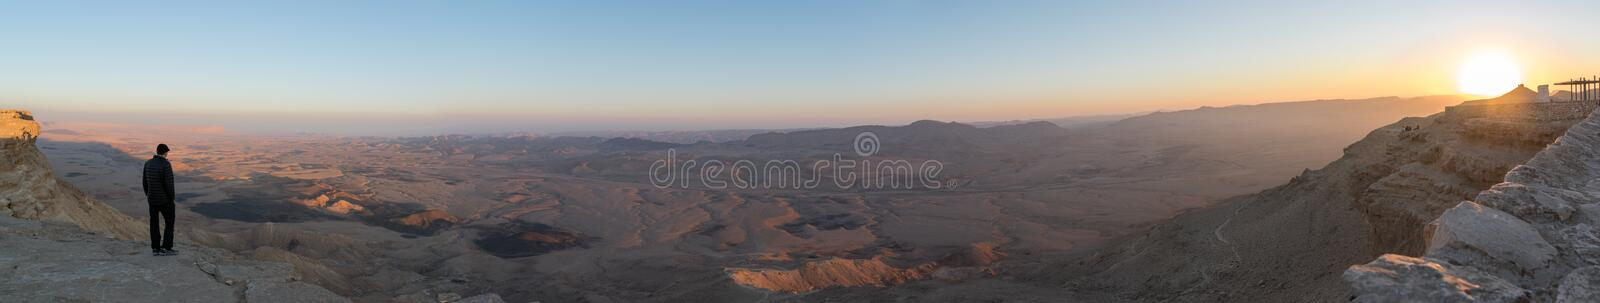 Makhtesh Ramon photo stock